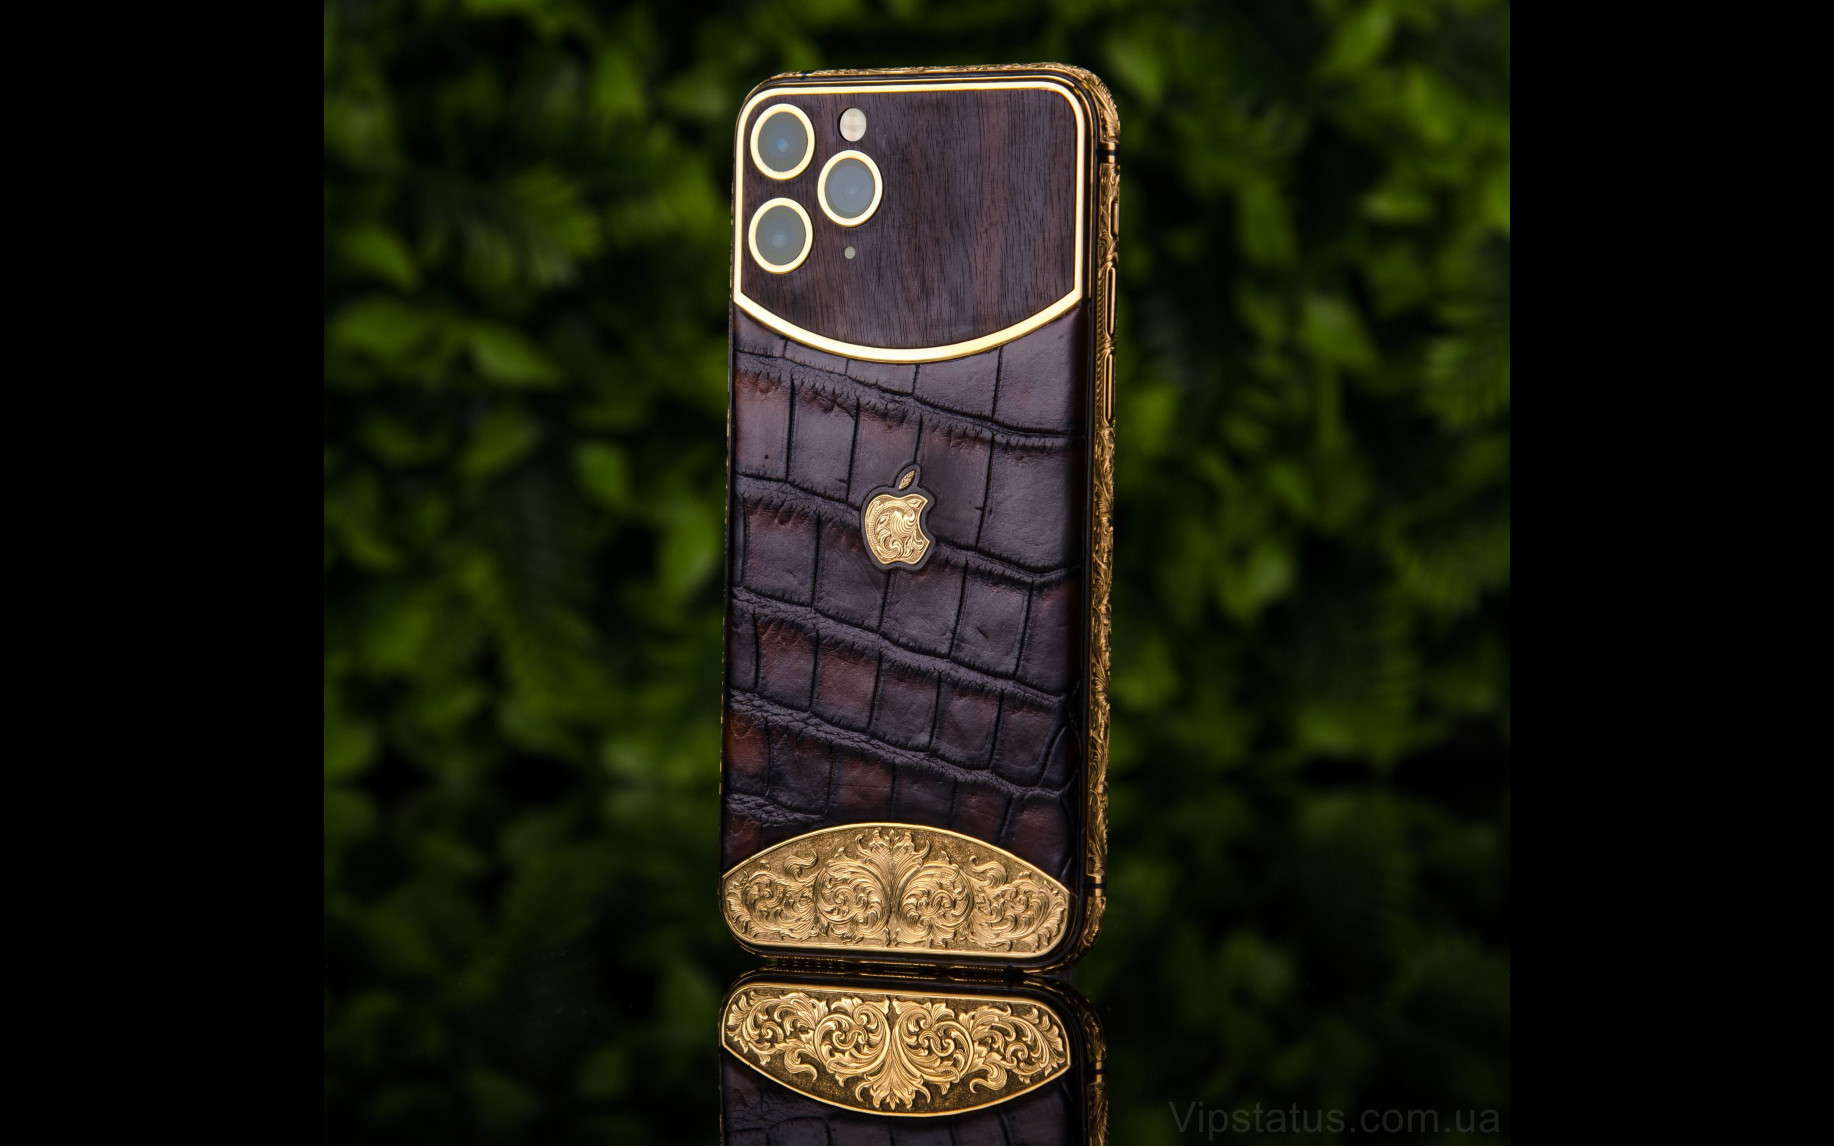 Elite Brown Edition IPHONE XS 512 GB Brown Edition IPHONE XS 512 GB image 7